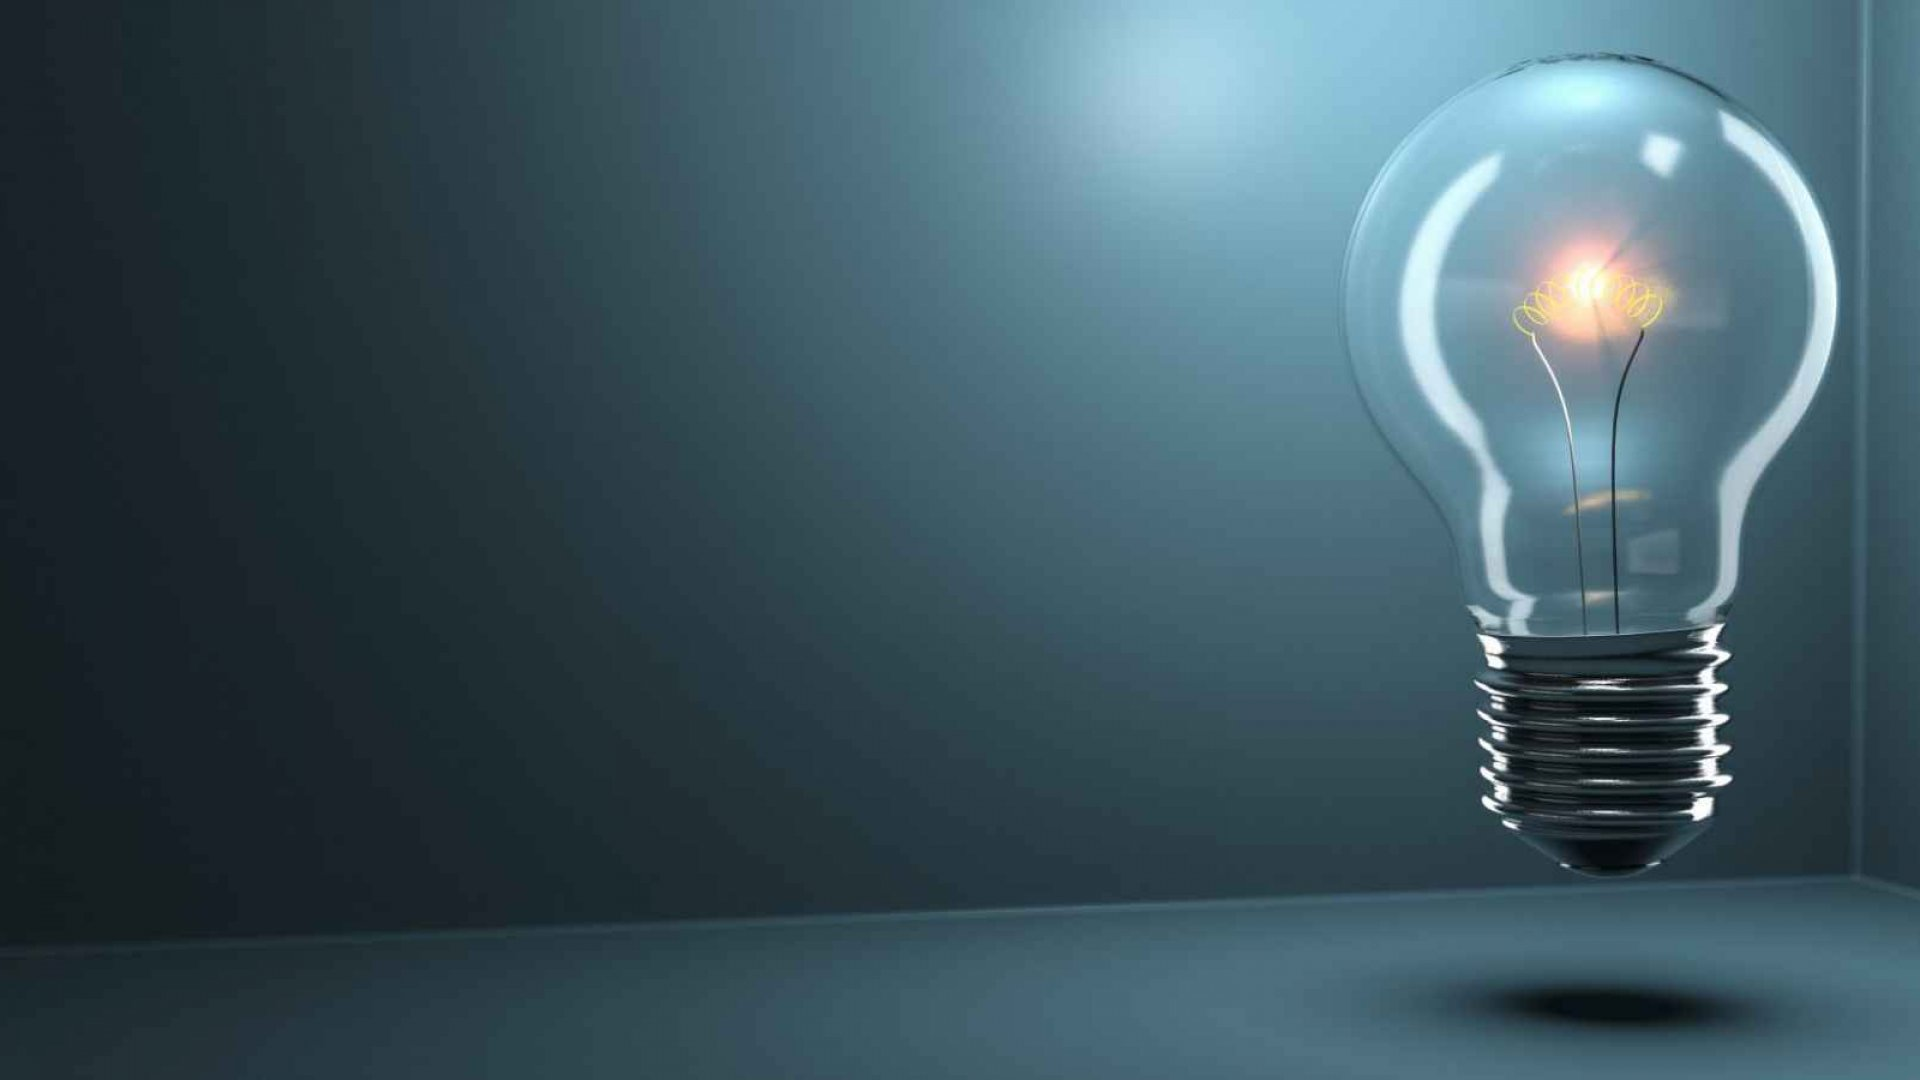 These 6 Principles Help Make Innovation Easy